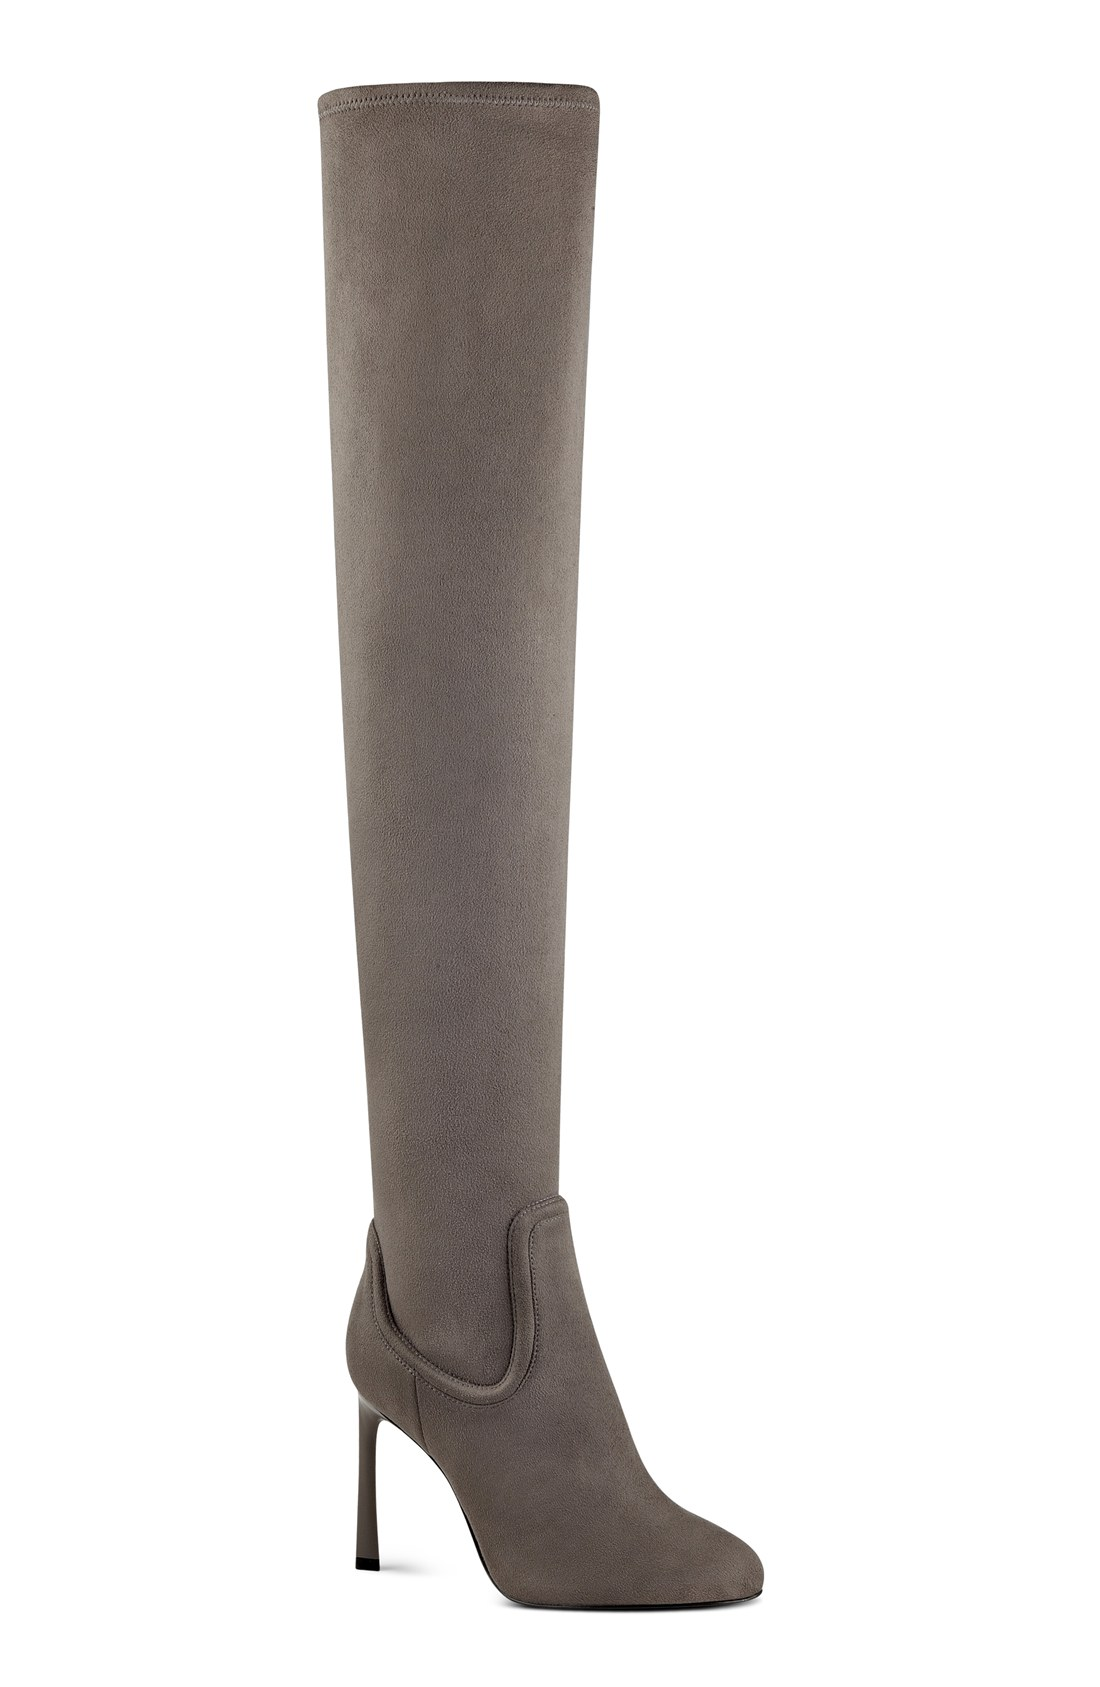 Grey Suede Thigh High Boots 8FCLr1C0